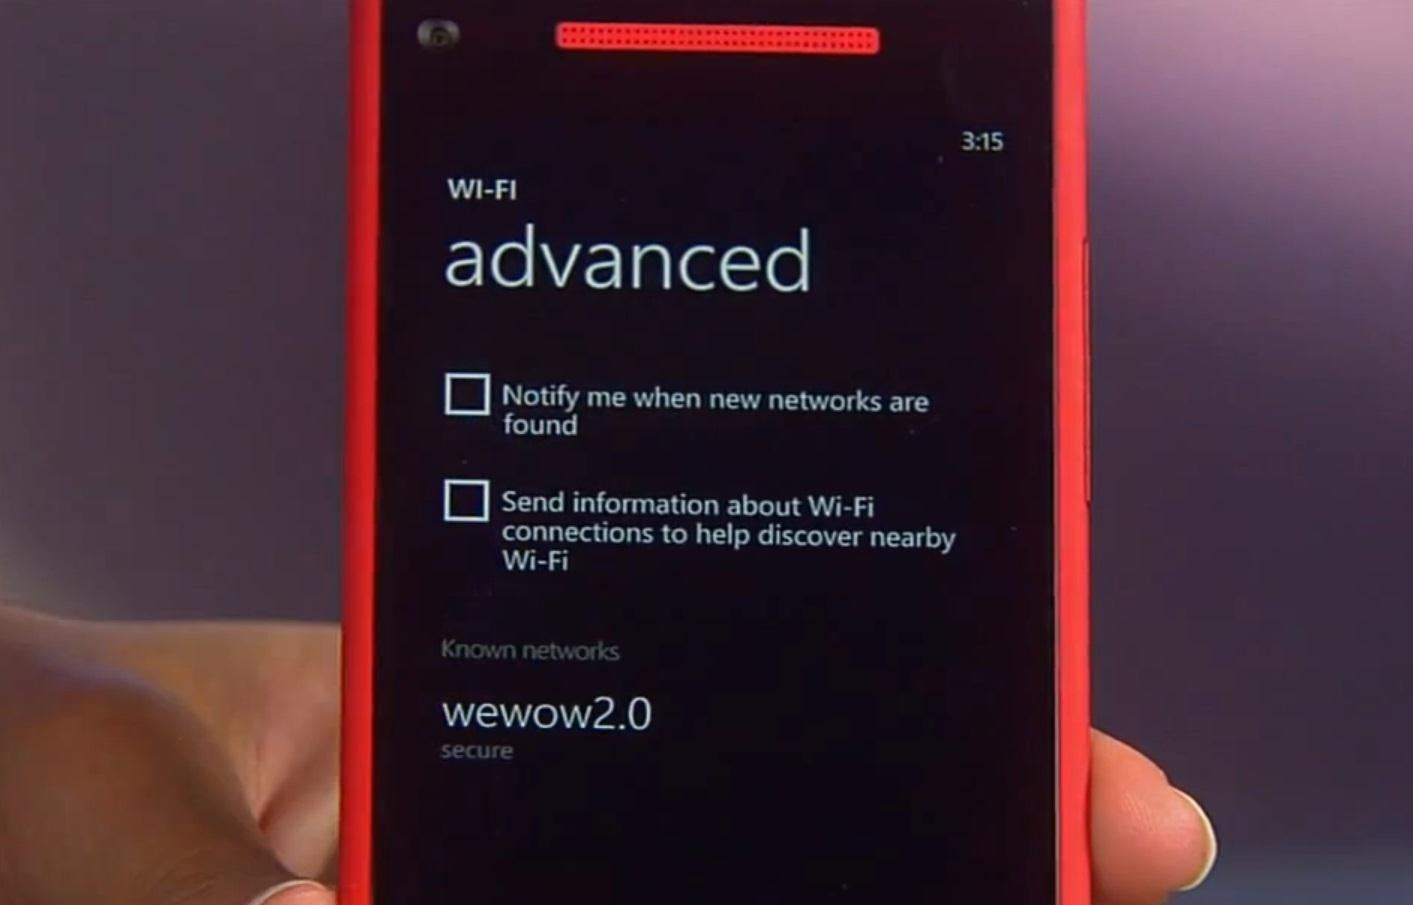 How to Increase Battery Life on Your Nokia Lumia 920 and Other Windows Phone 8 Devices